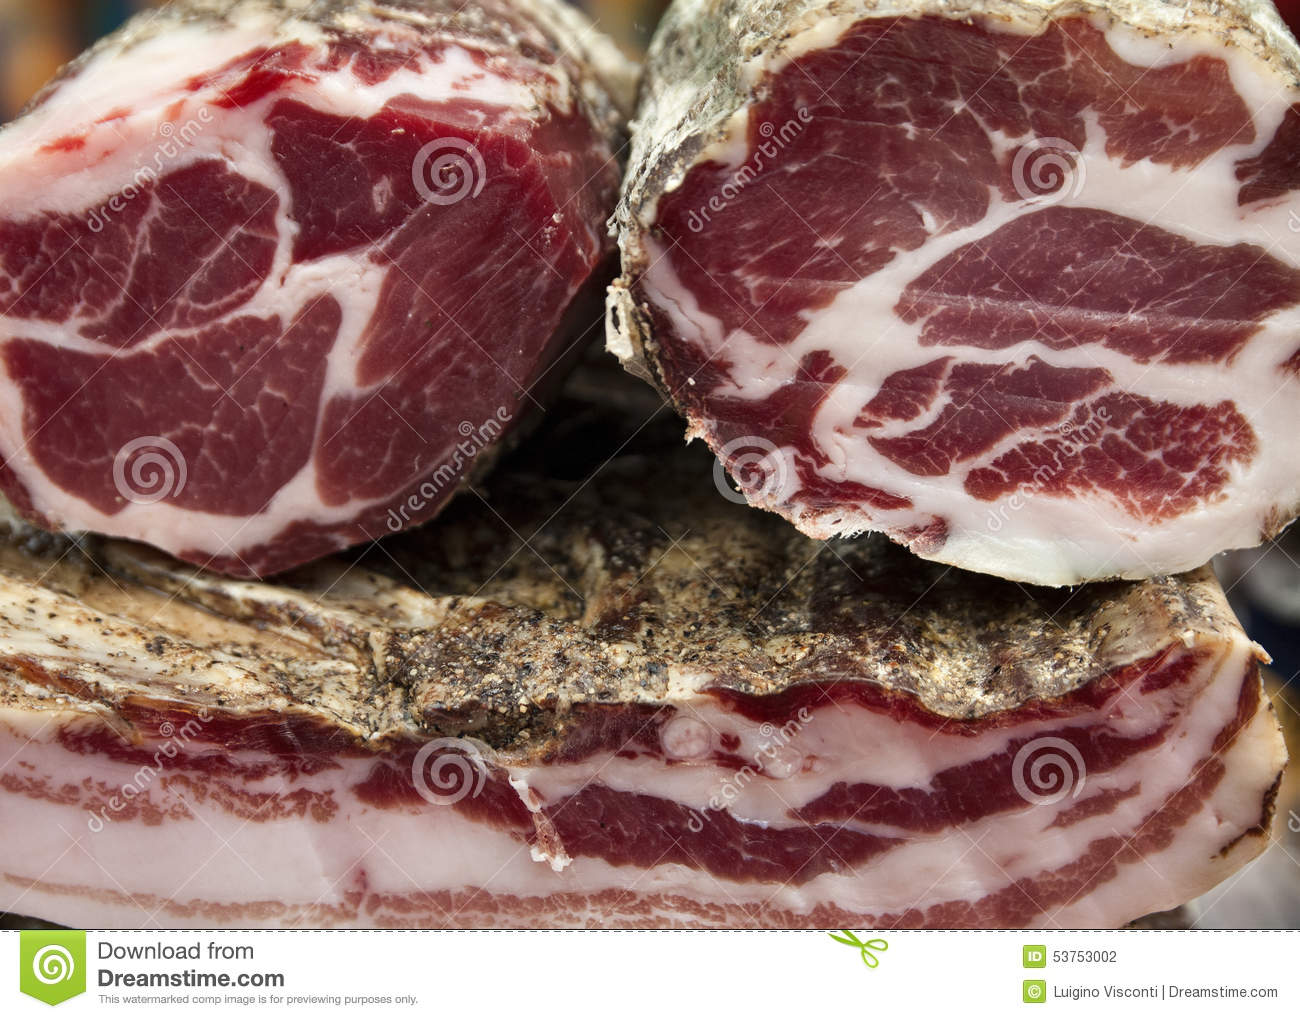 Stock Photo Italian Cold Cuts Various Types Handmade Image53753002 in addition Philiipine Traditional Costumes also Thewickerchicken wordpress in addition What Is Mortadella likewise Ieatdeer. on types of ham cold cuts